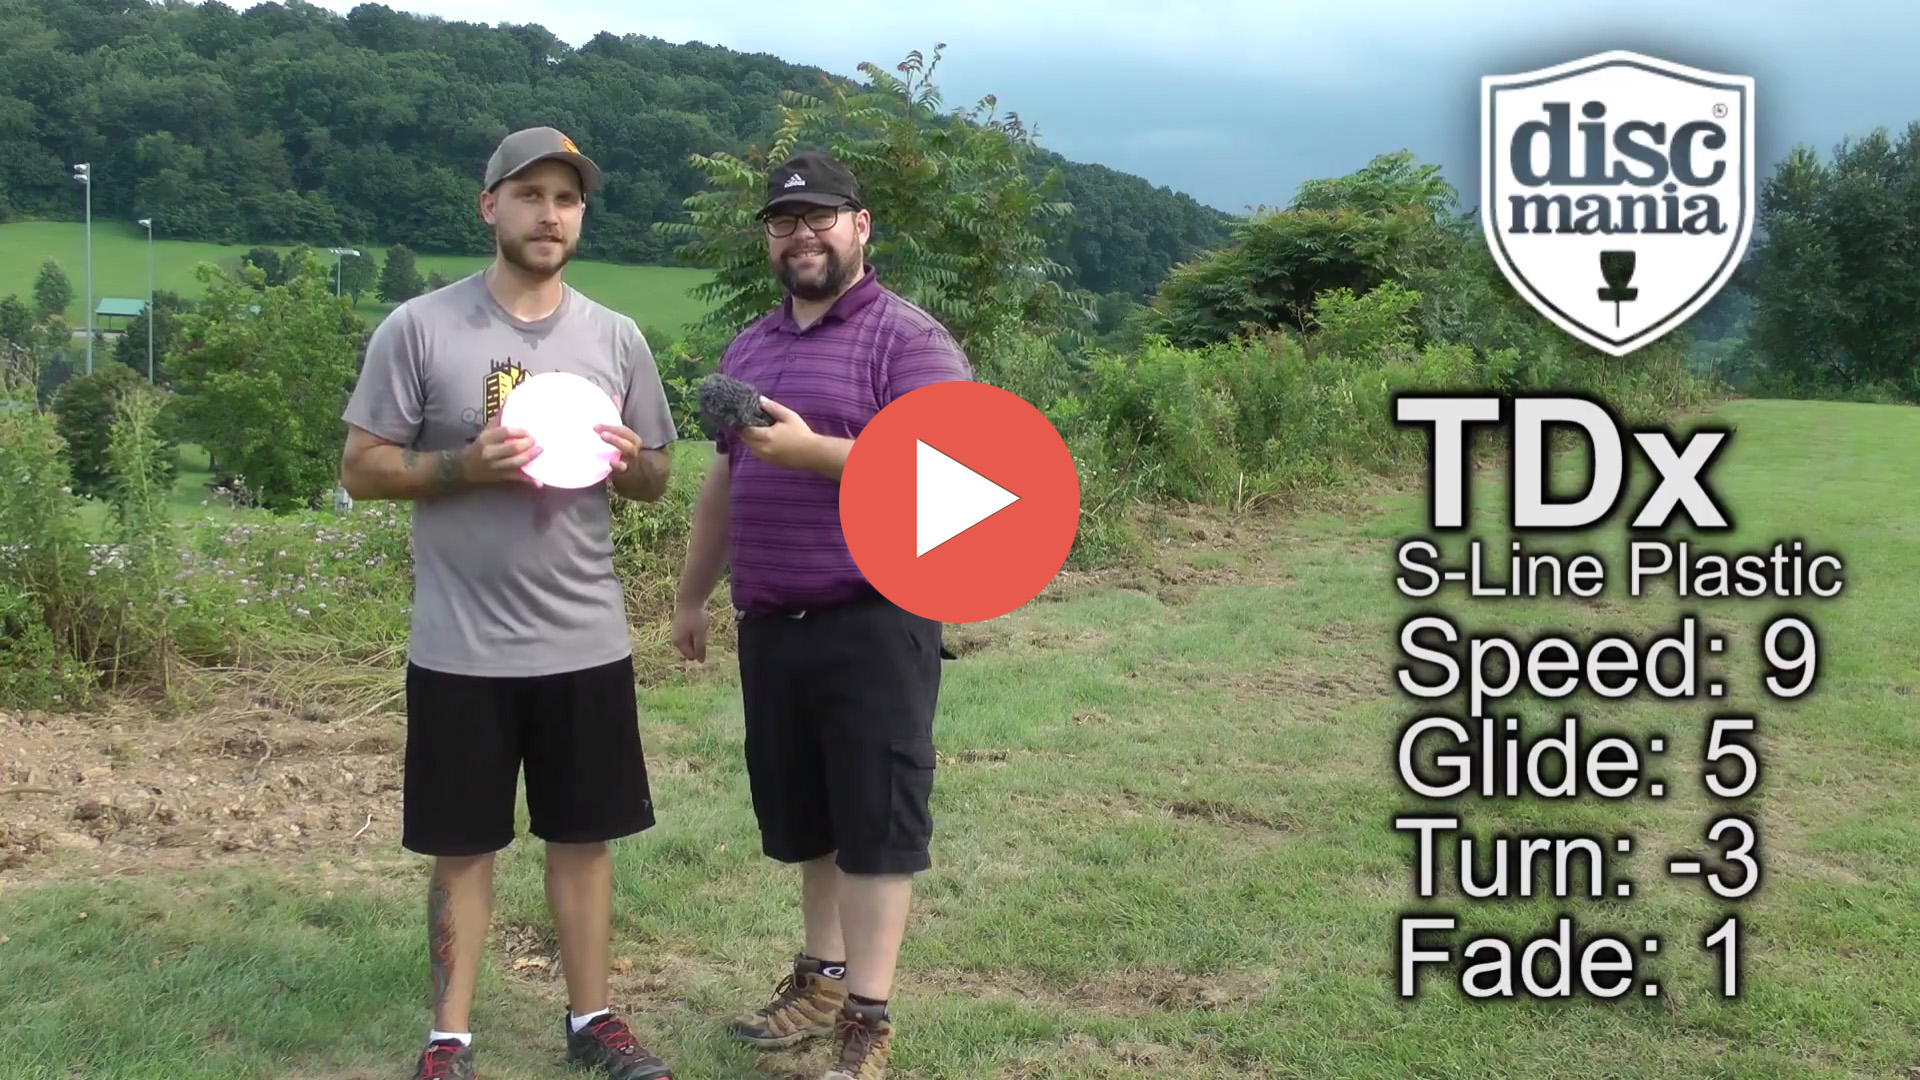 Discmania TDx in S-Line Plastic Review